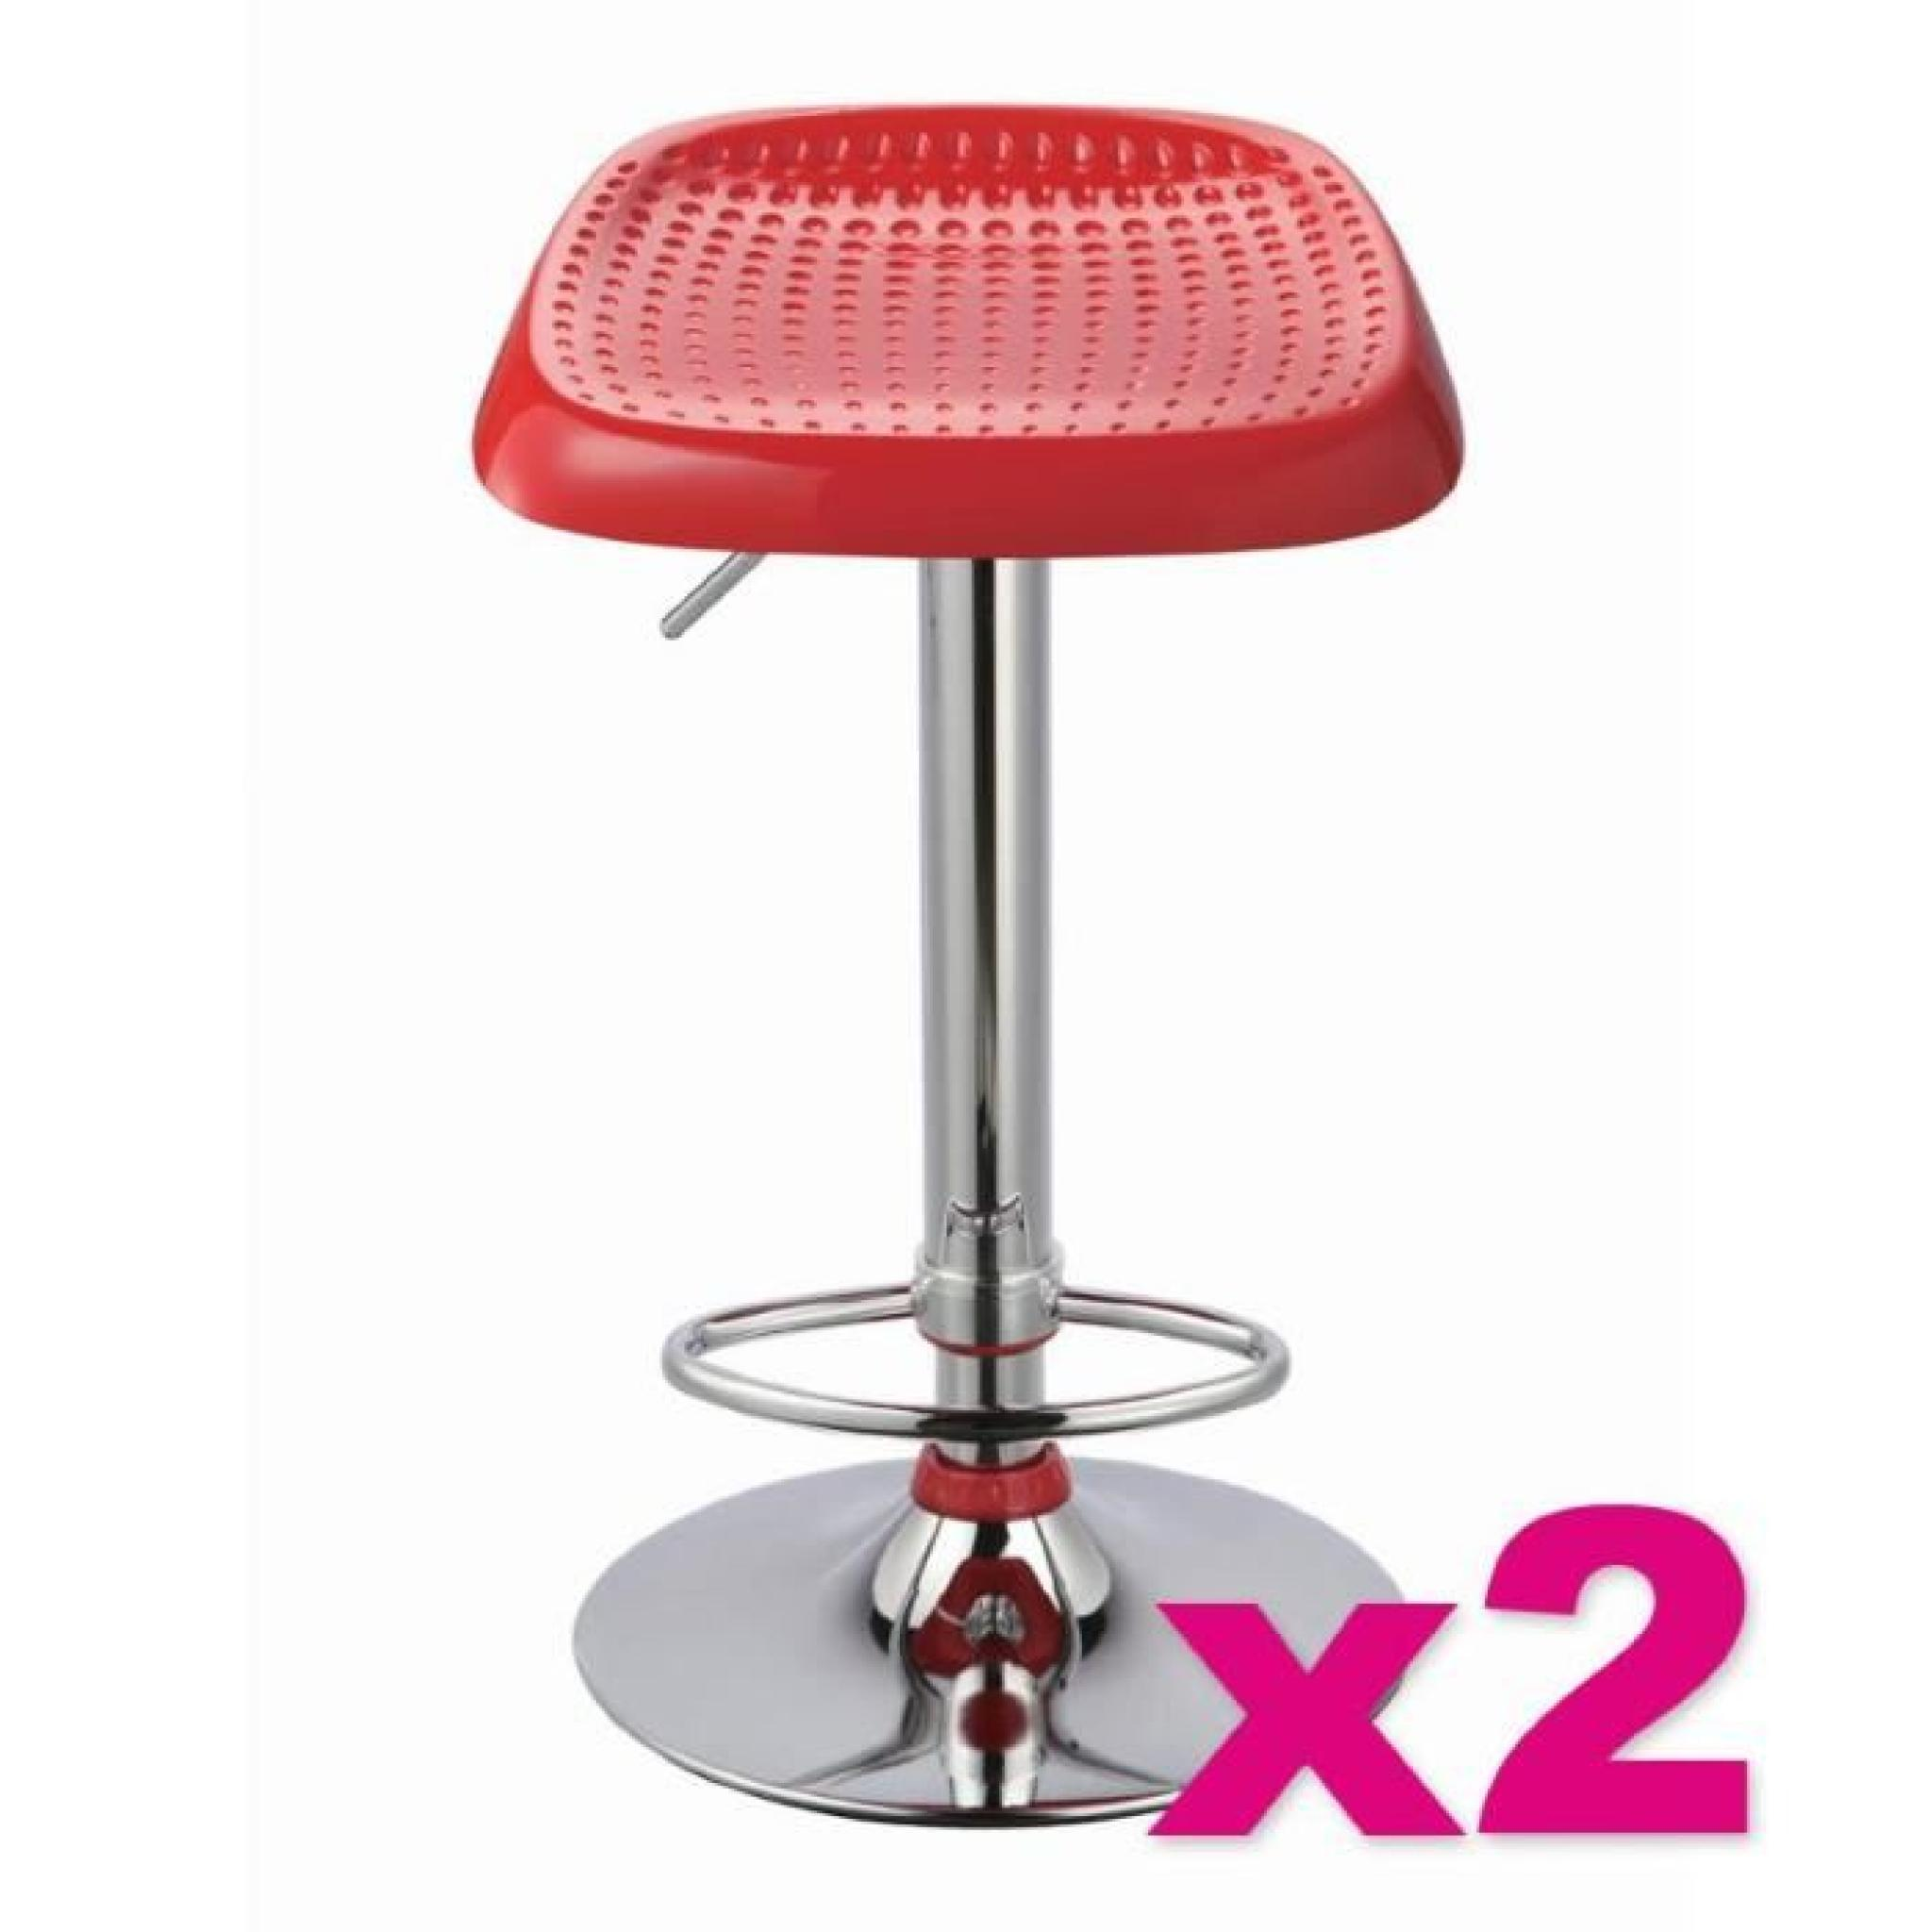 Lot de 2 tabourets de bar manhattan rouge achat vente tabouret de bar pas c - Tabouret de bar rouge pas cher ...